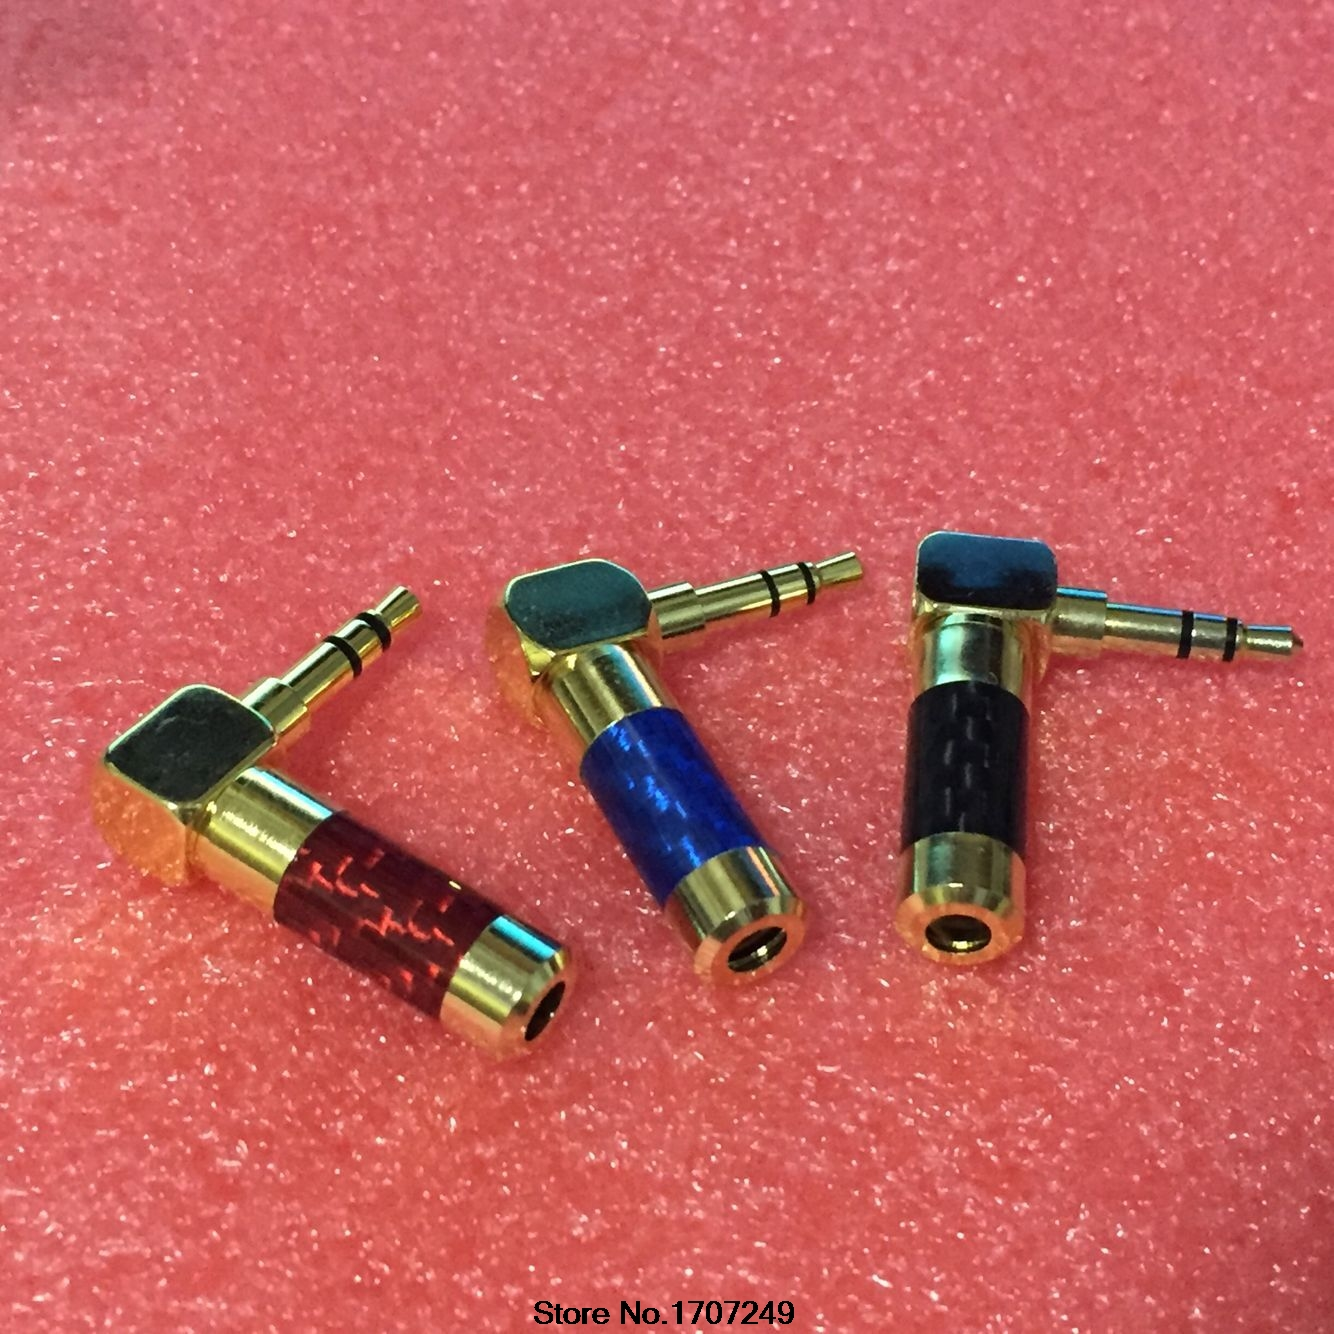 1pcs 24K Gold Plated audio 3.5mm 3 pole jack 90 Degree Headphone Plug Right Angle Stereo Audio Jack Connector for Cable Adapter schneider 6pcs supplementary ink pen ink sac ink ink gall bladder boxed portable recycle